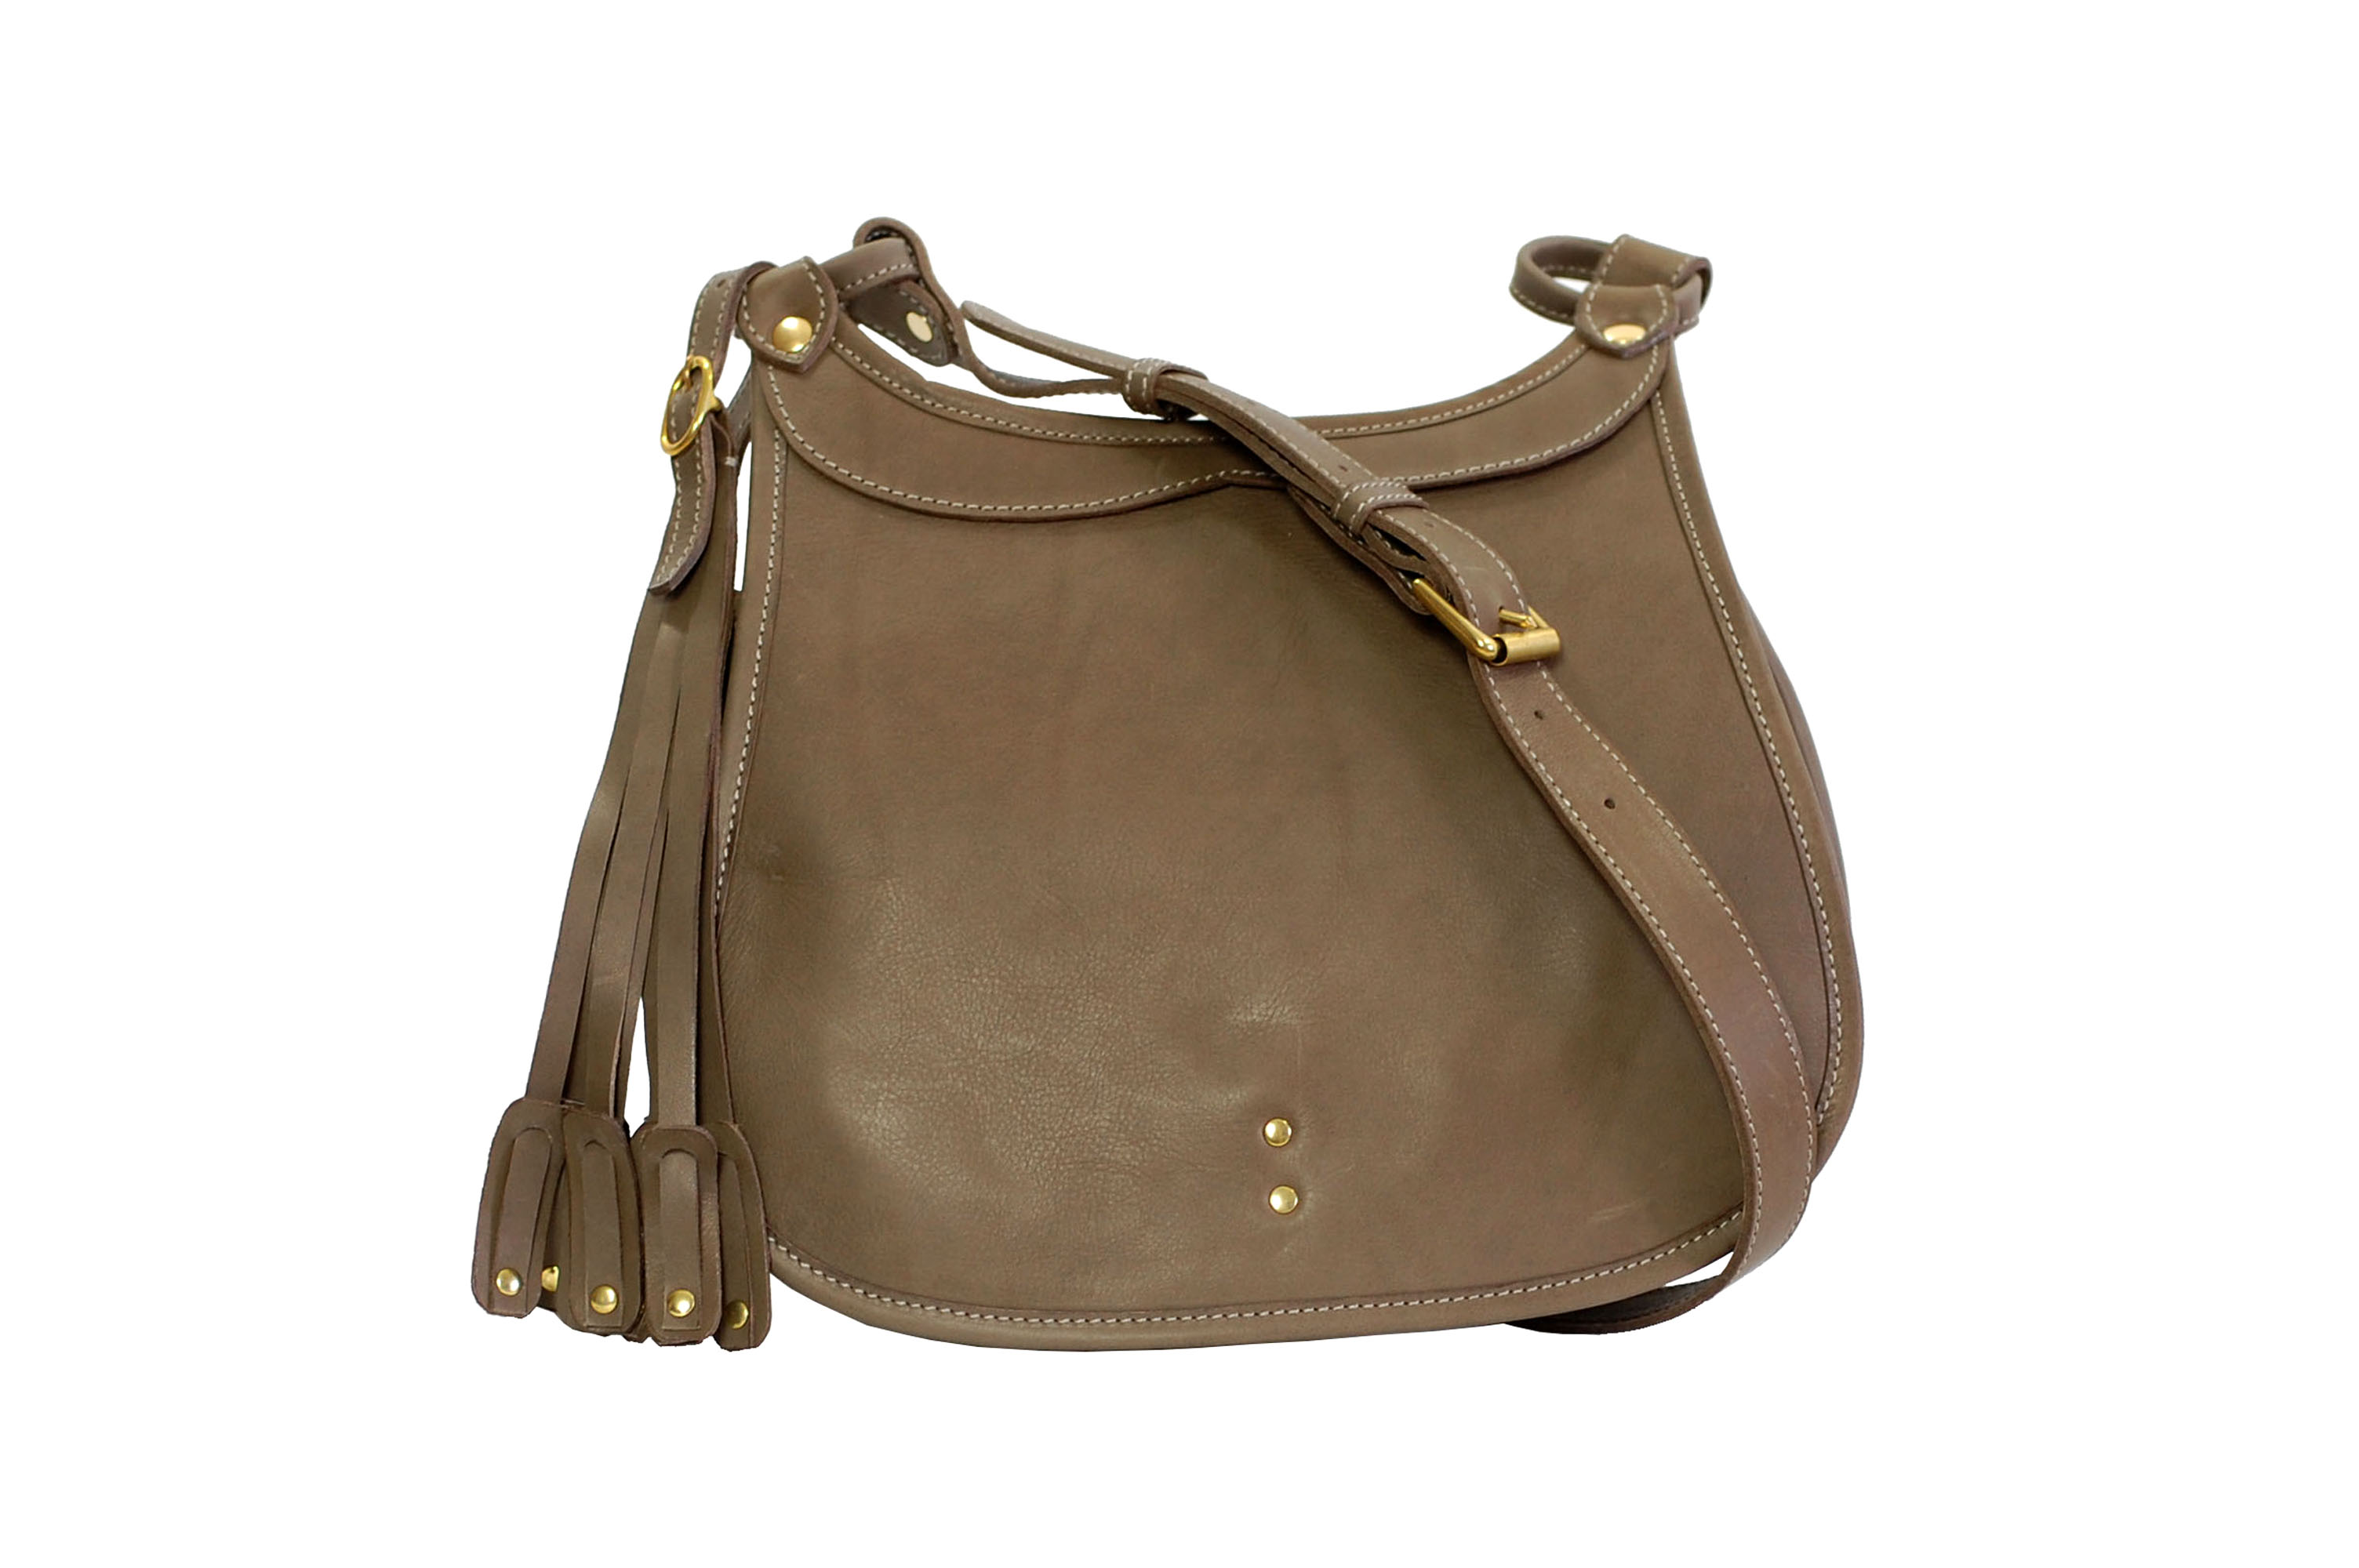 Mahiout Hawk bag in olive vegetable tanned leather